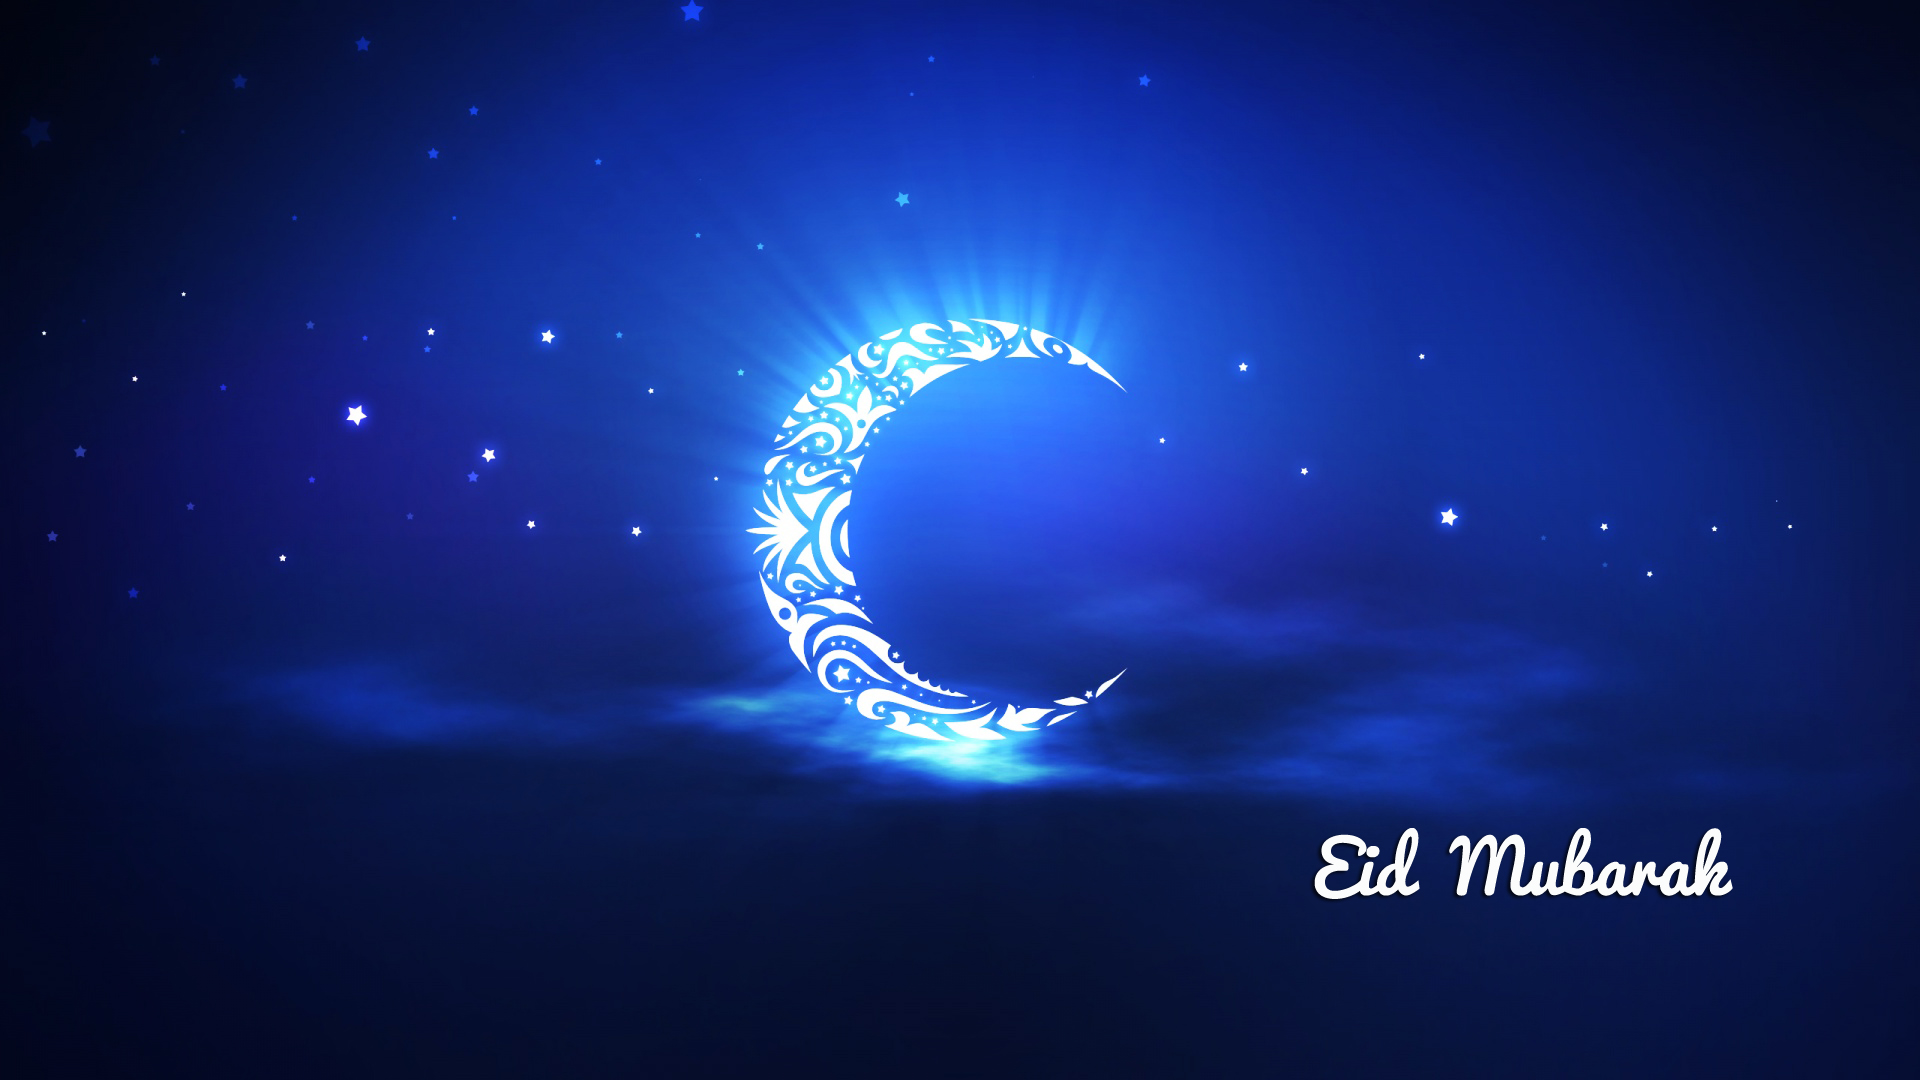 Best eid mubarak hd images greeting cards wallpaper and photos download eid mubarak hd photos wallpaper kristyandbryce Image collections